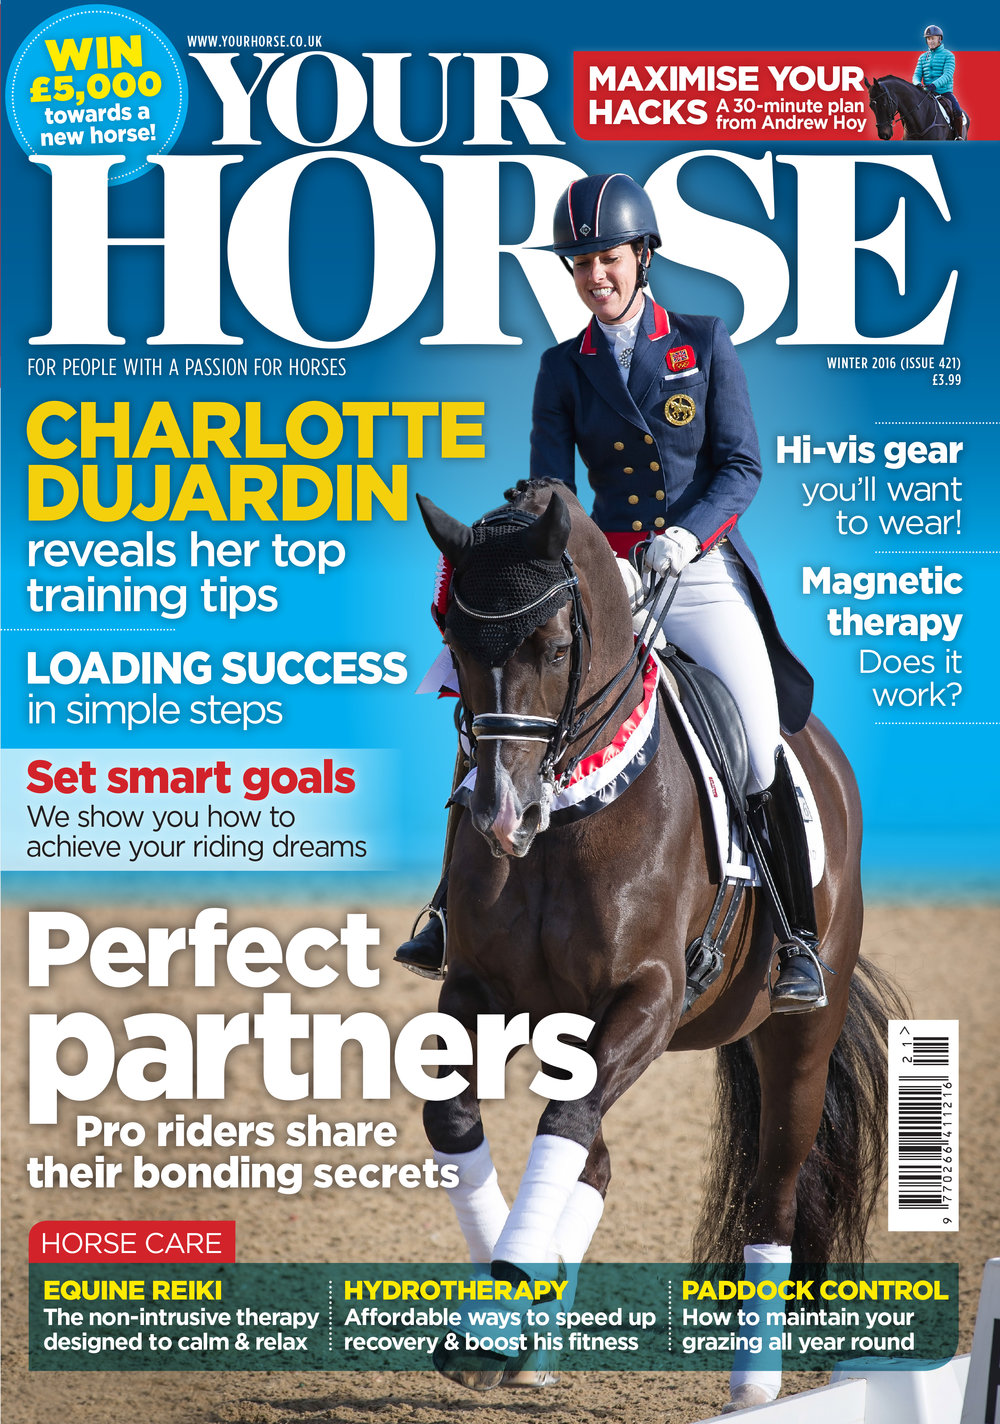 Your Horse magazine winter 2016 cover